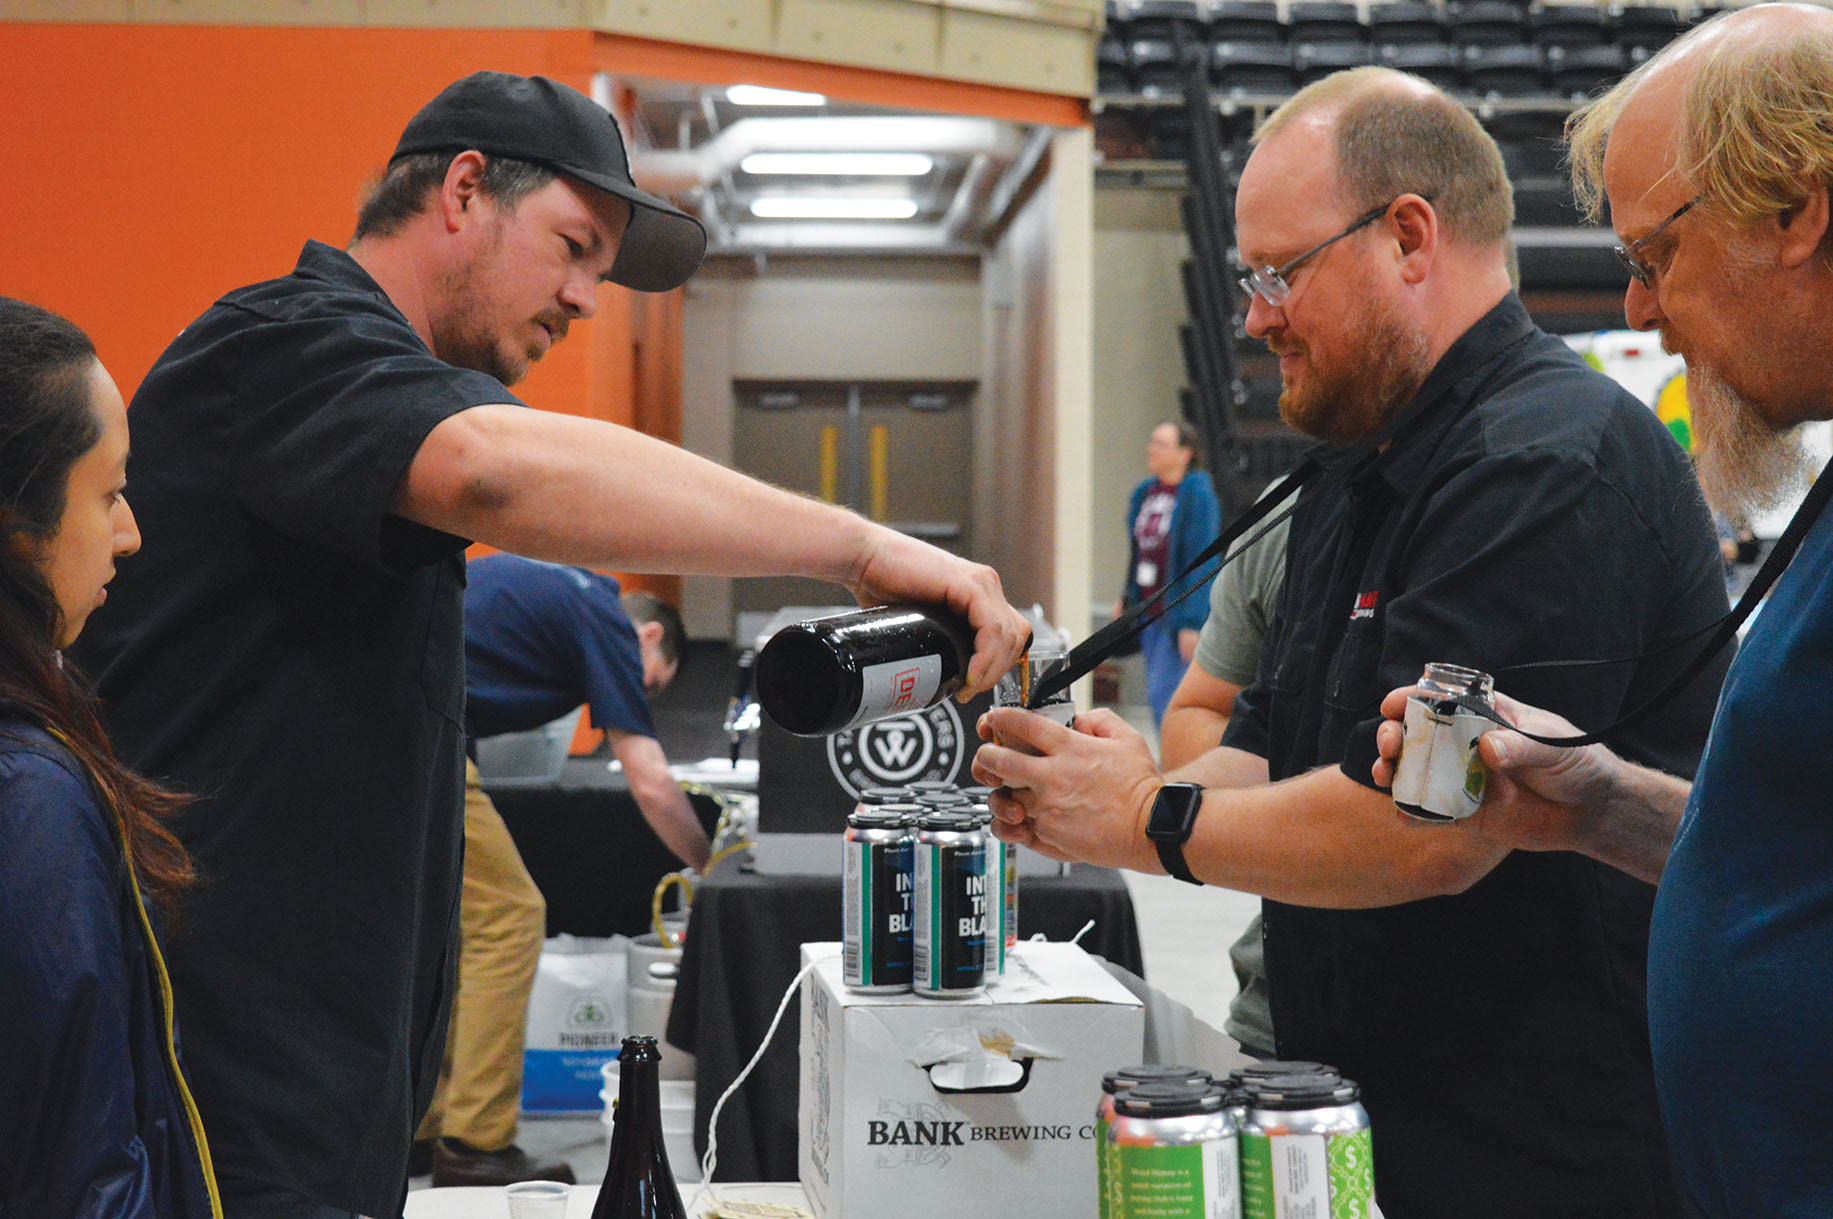 Brewing Up Craft Beer Samples News Sports Jobs Marshall